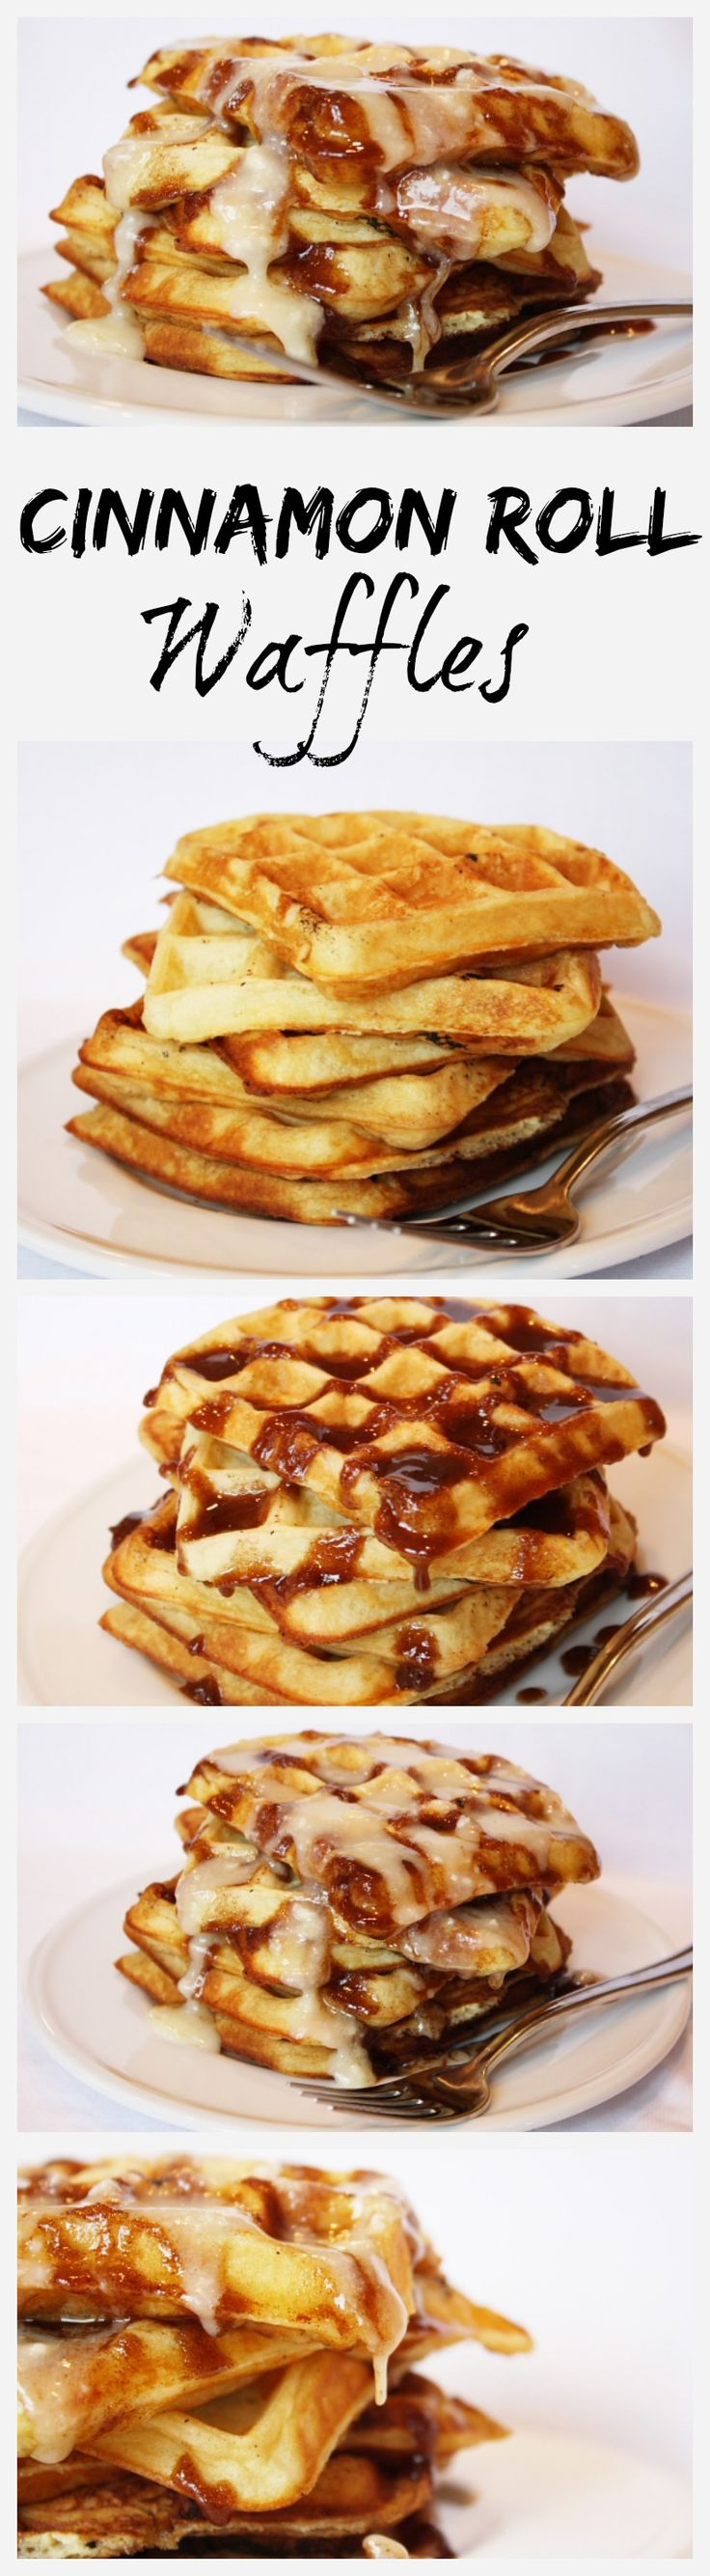 Cinnamon Roll Waffles #recipe - Best weekend breakfast ever! www.cookingsignature.com